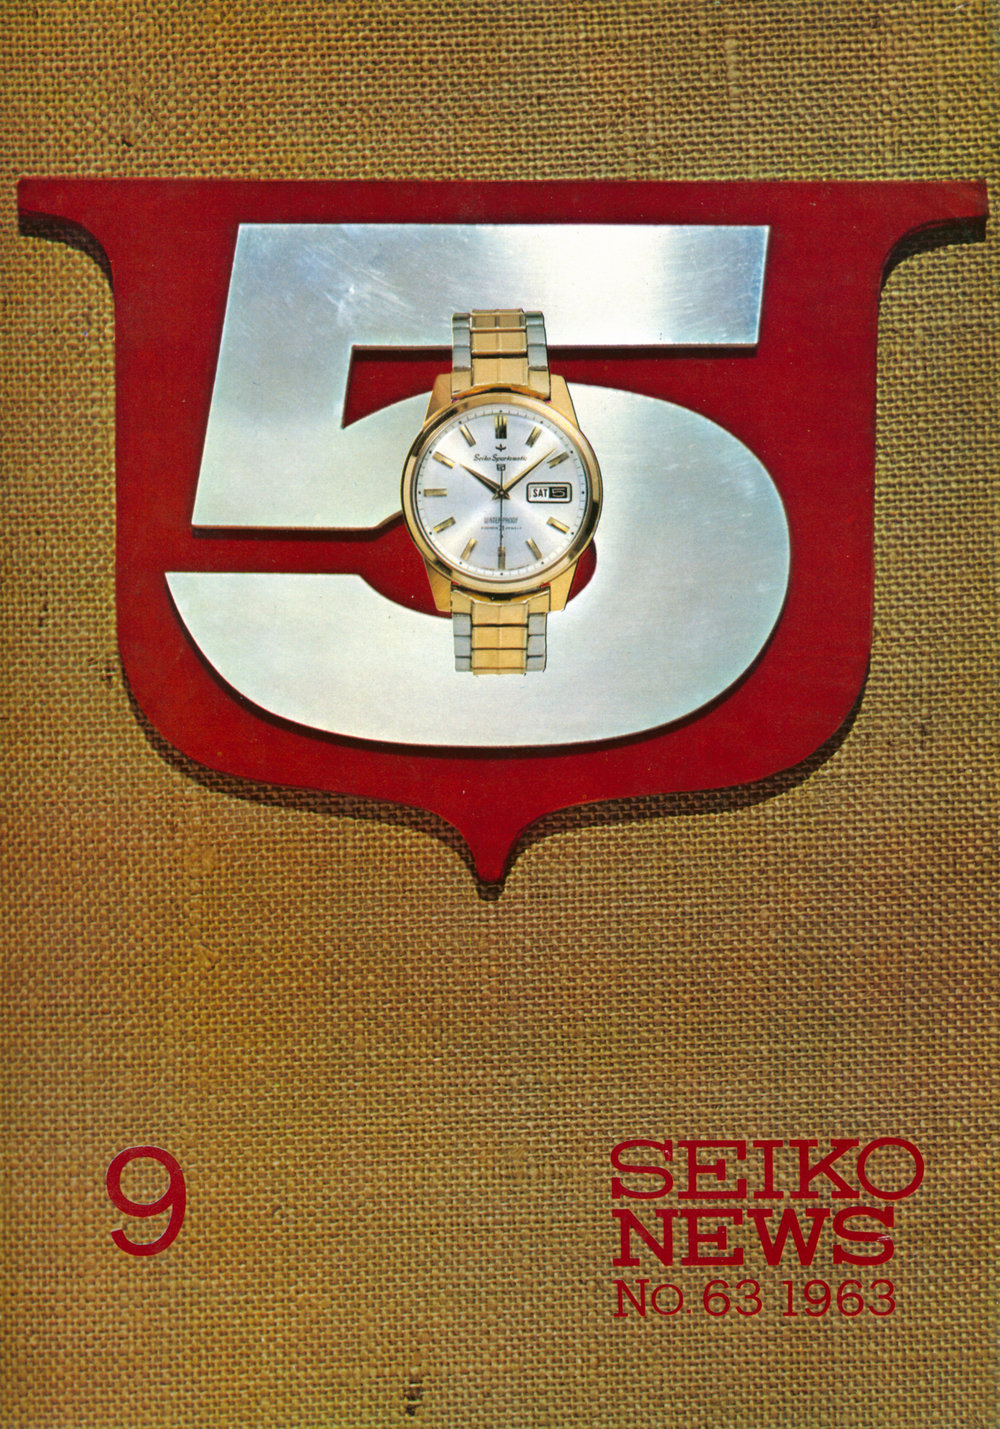 Seiko News 1963.09 Cover